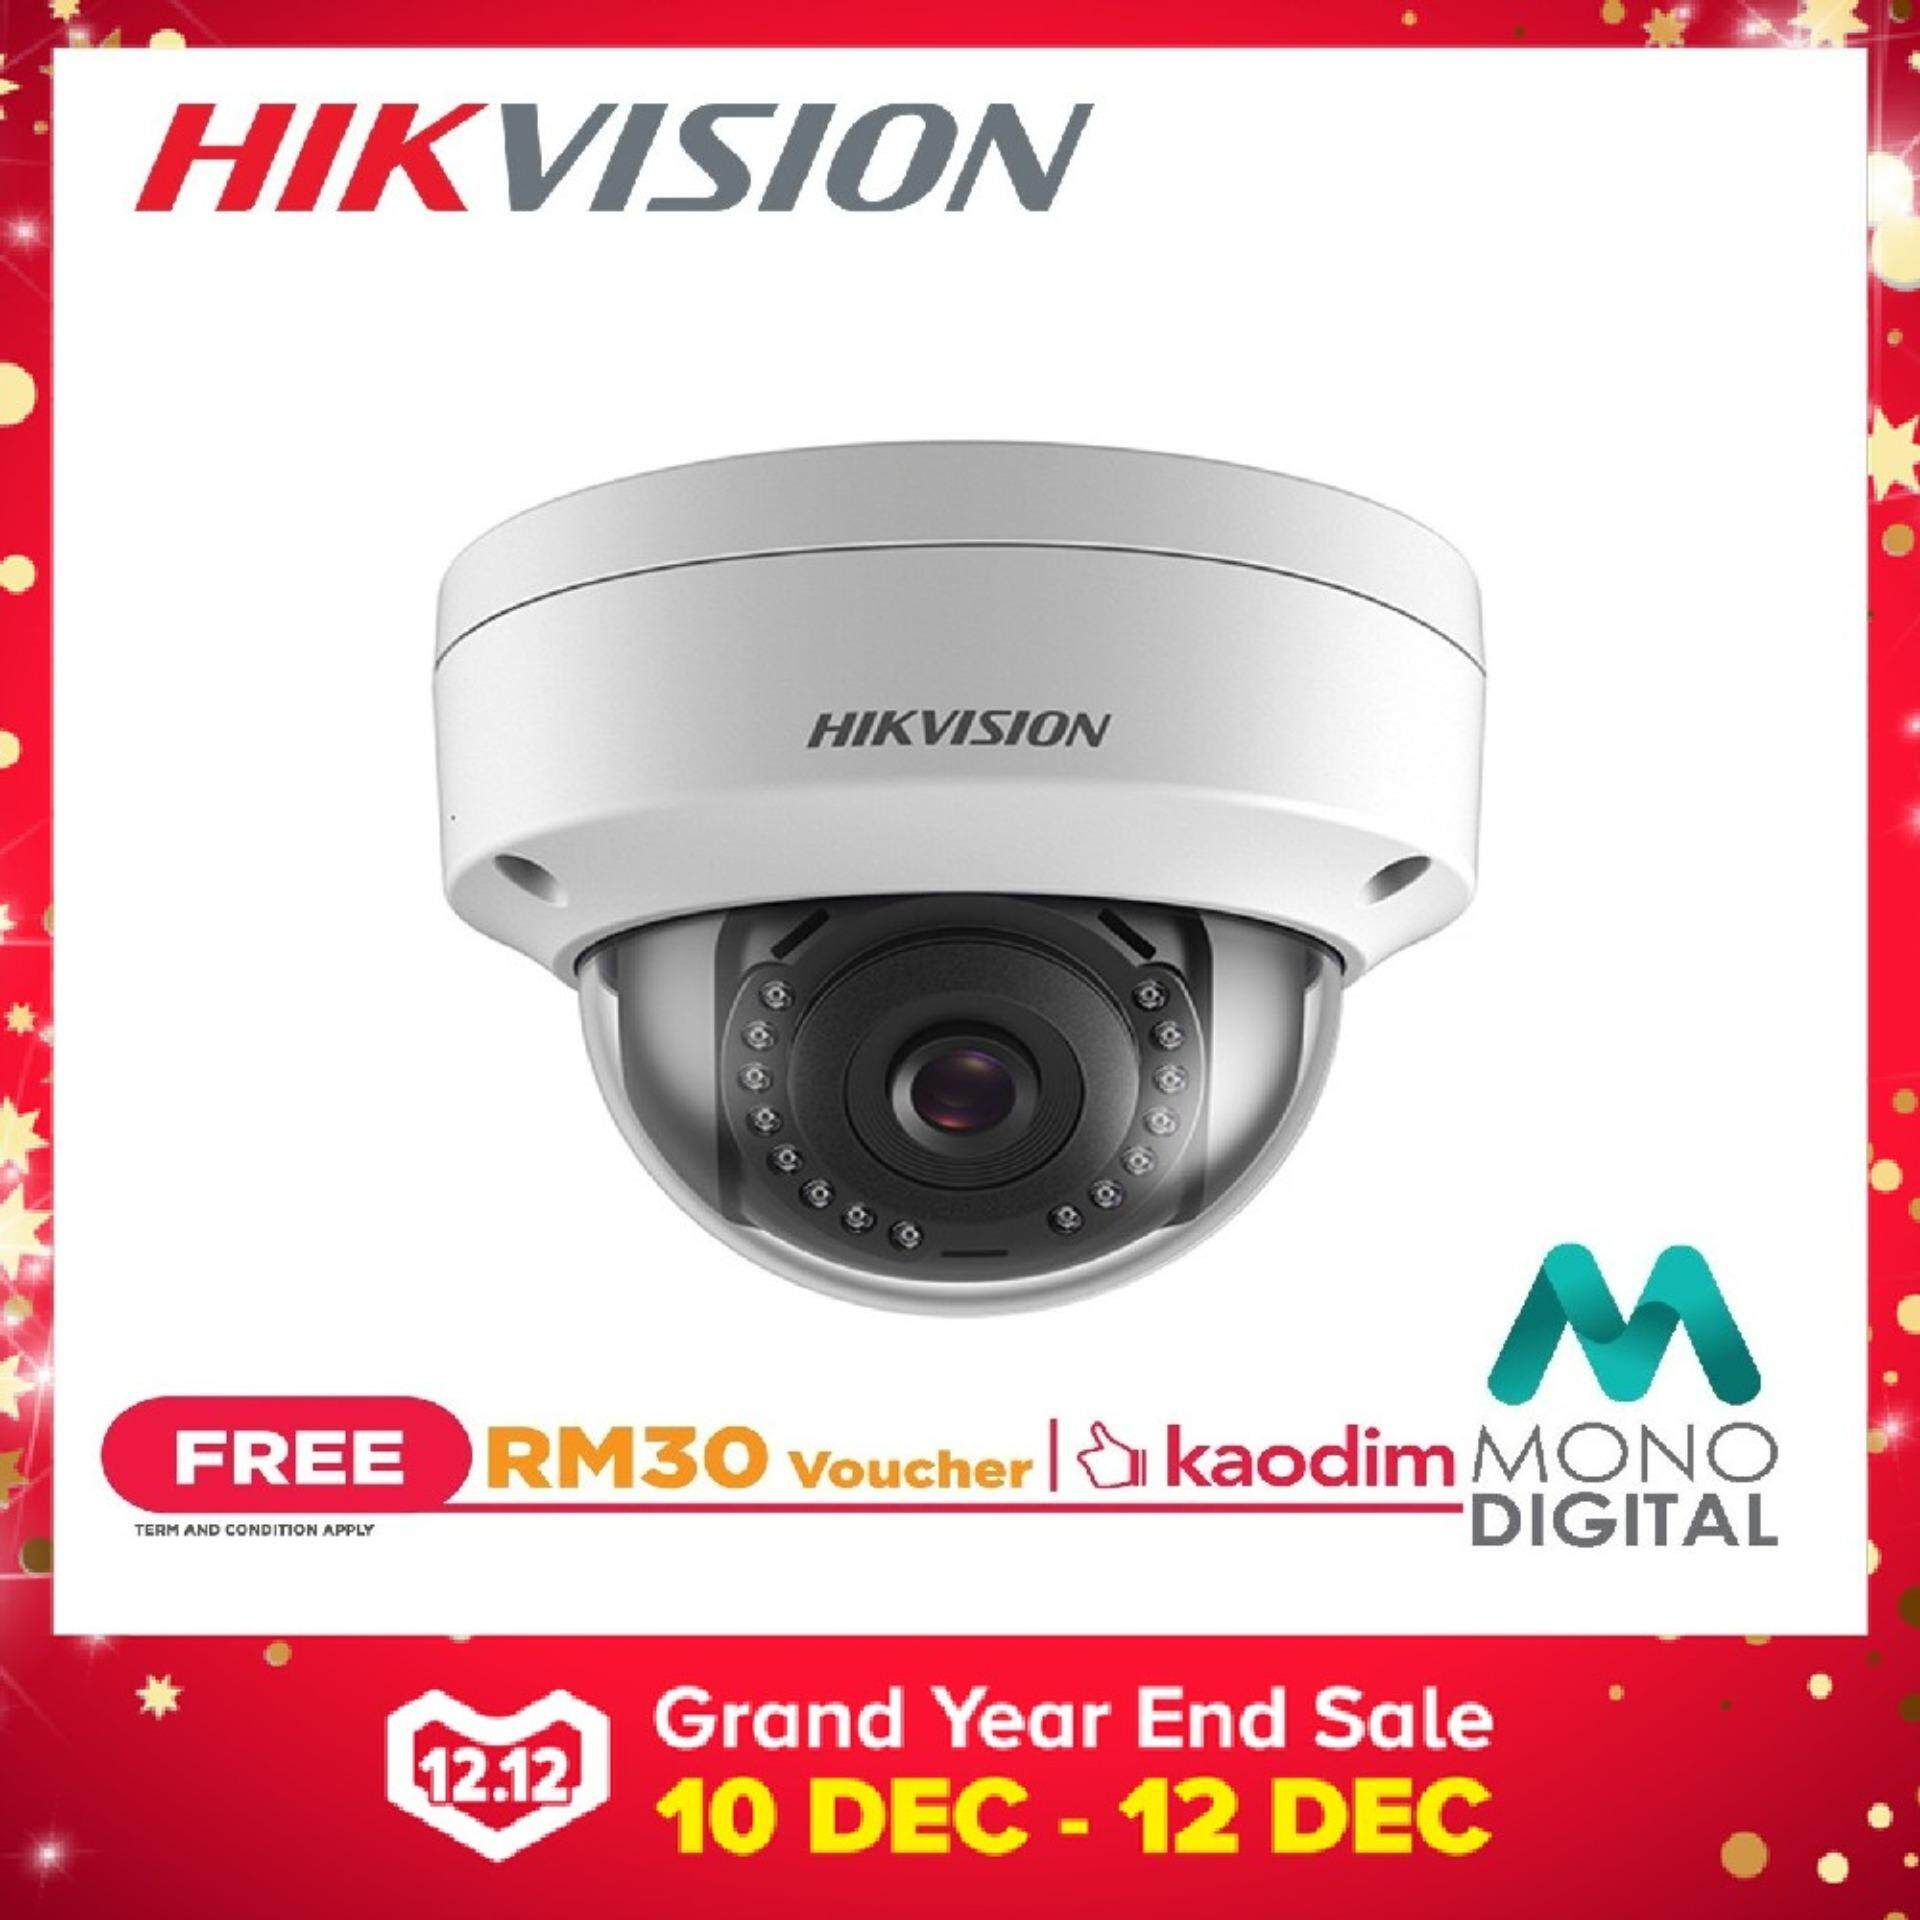 Hikvision HIK-DS-2CD1121-I 2.0 MP CMOS Network Dome Camera CCTV  (Free Kaodim Voucher RM30) (Hikvision Malaysia)